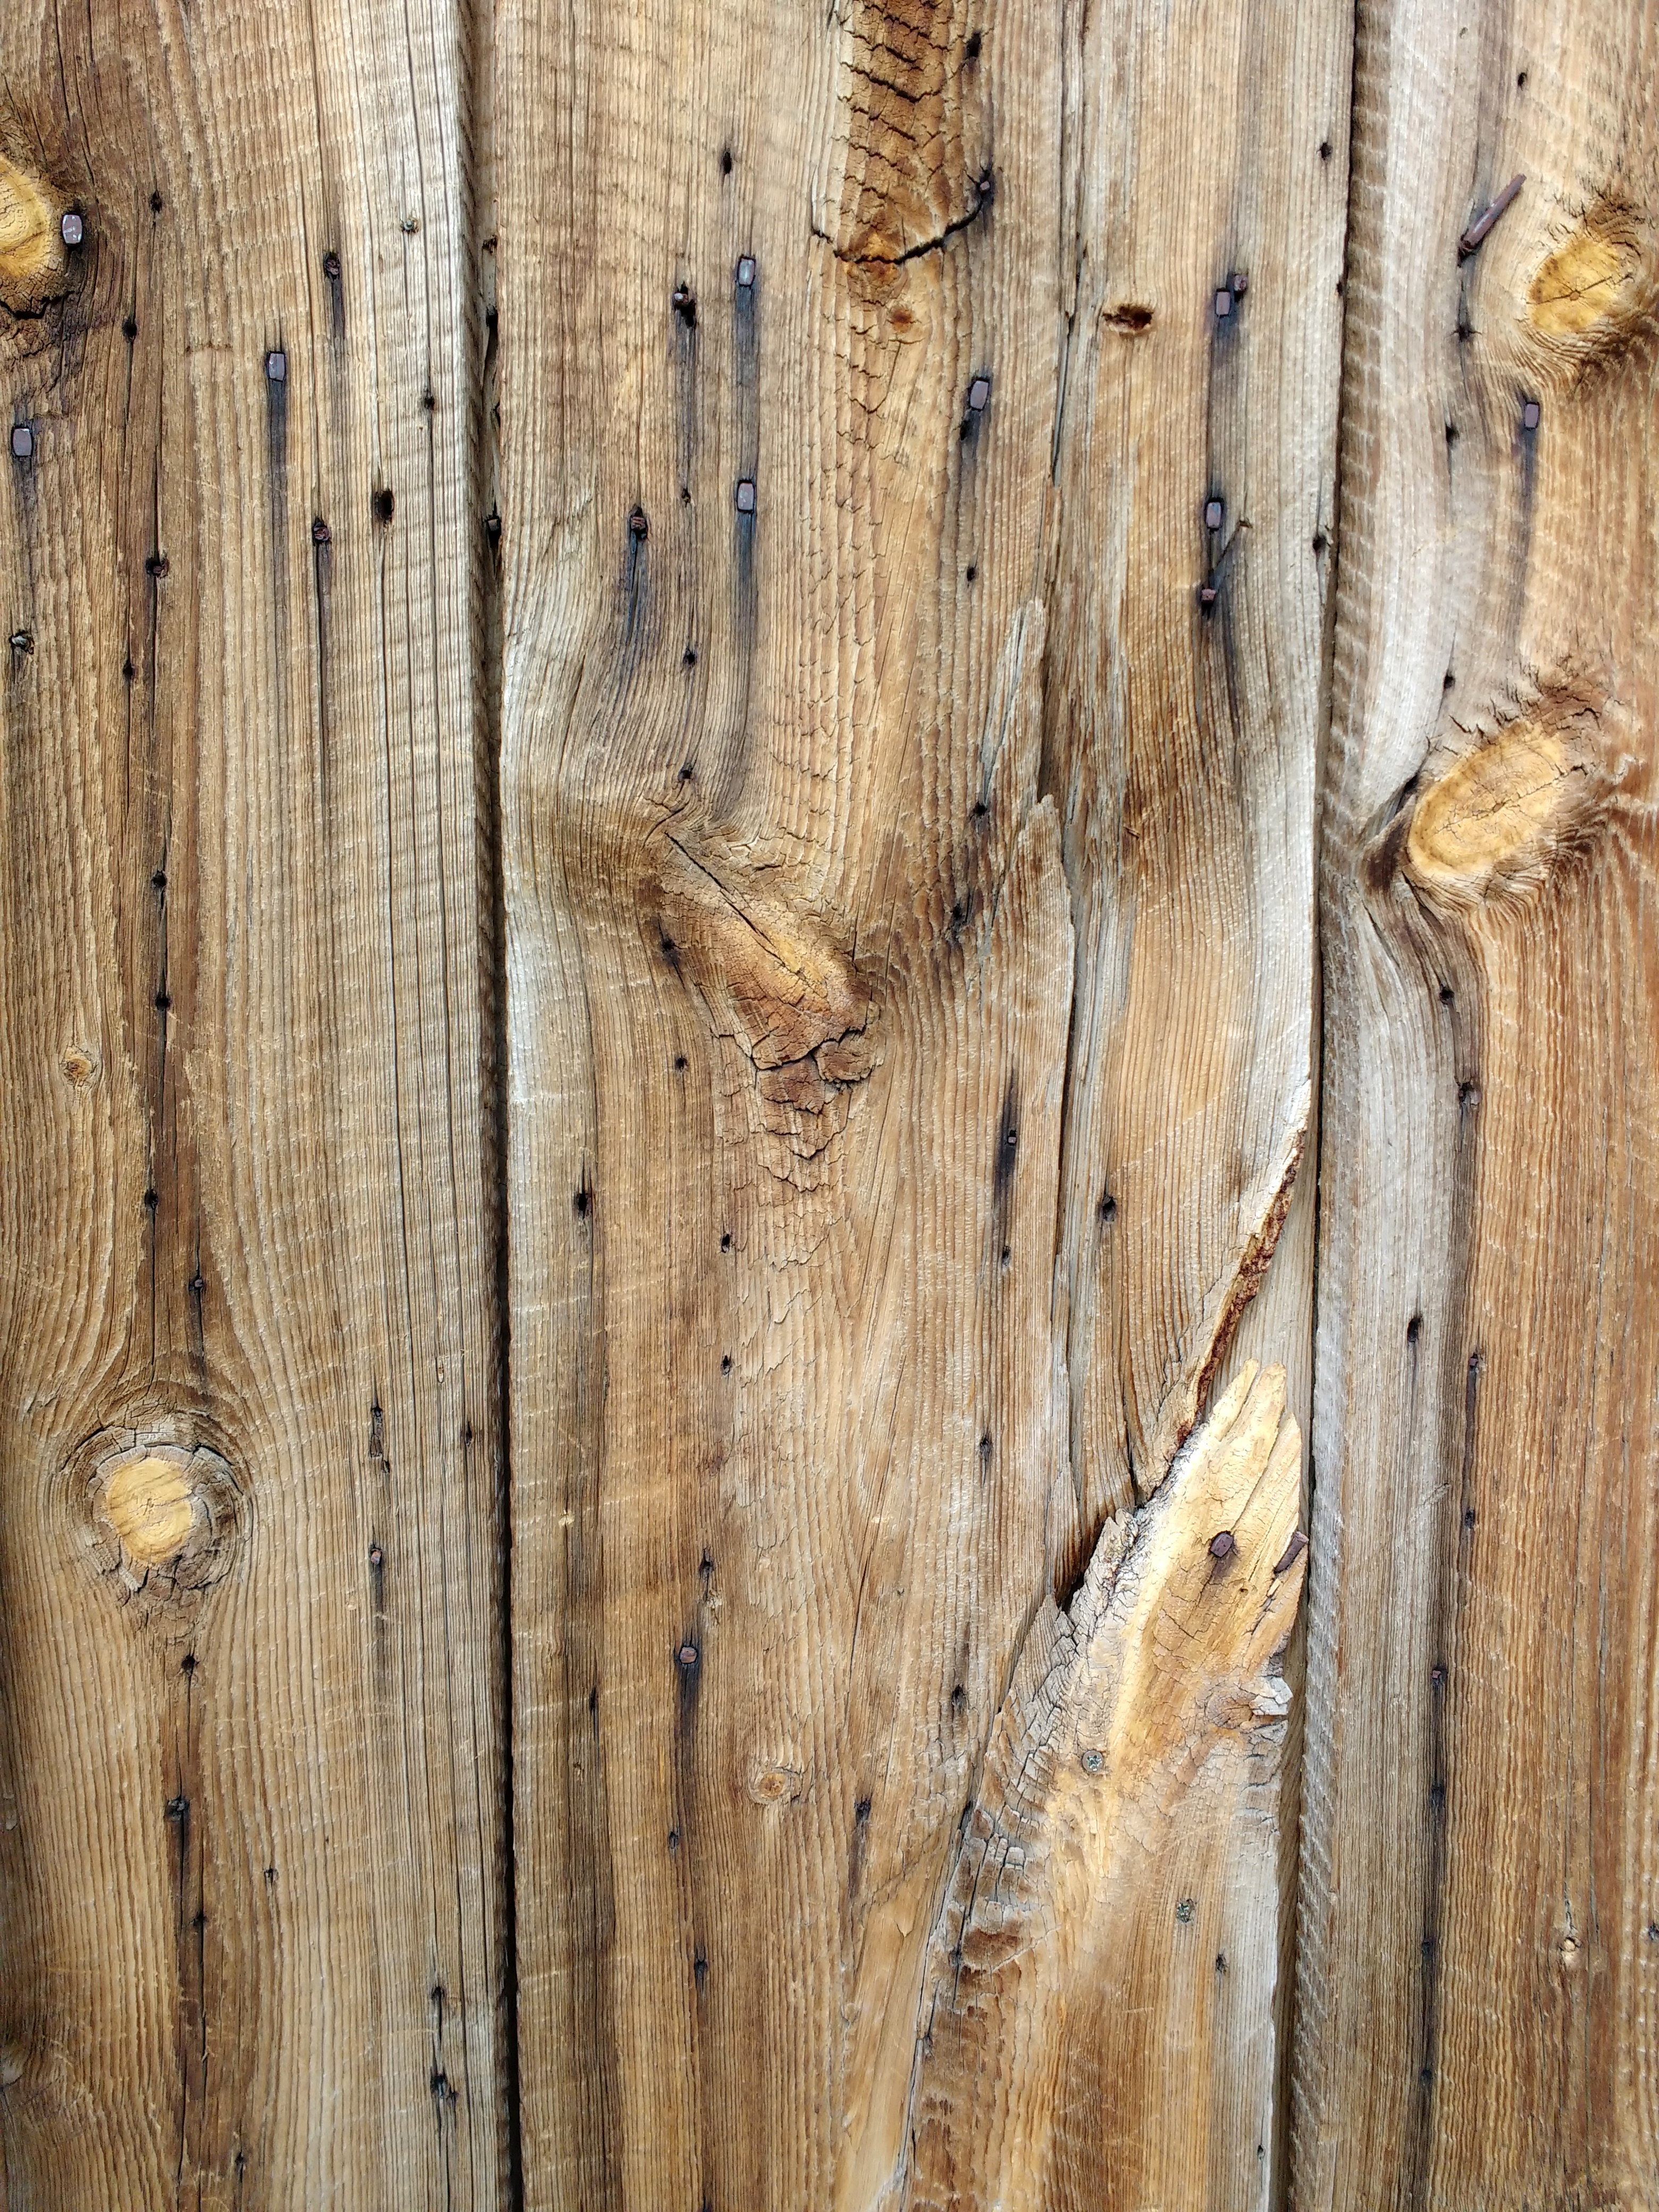 Old Wooden Boards Texture Picture Free Photograph